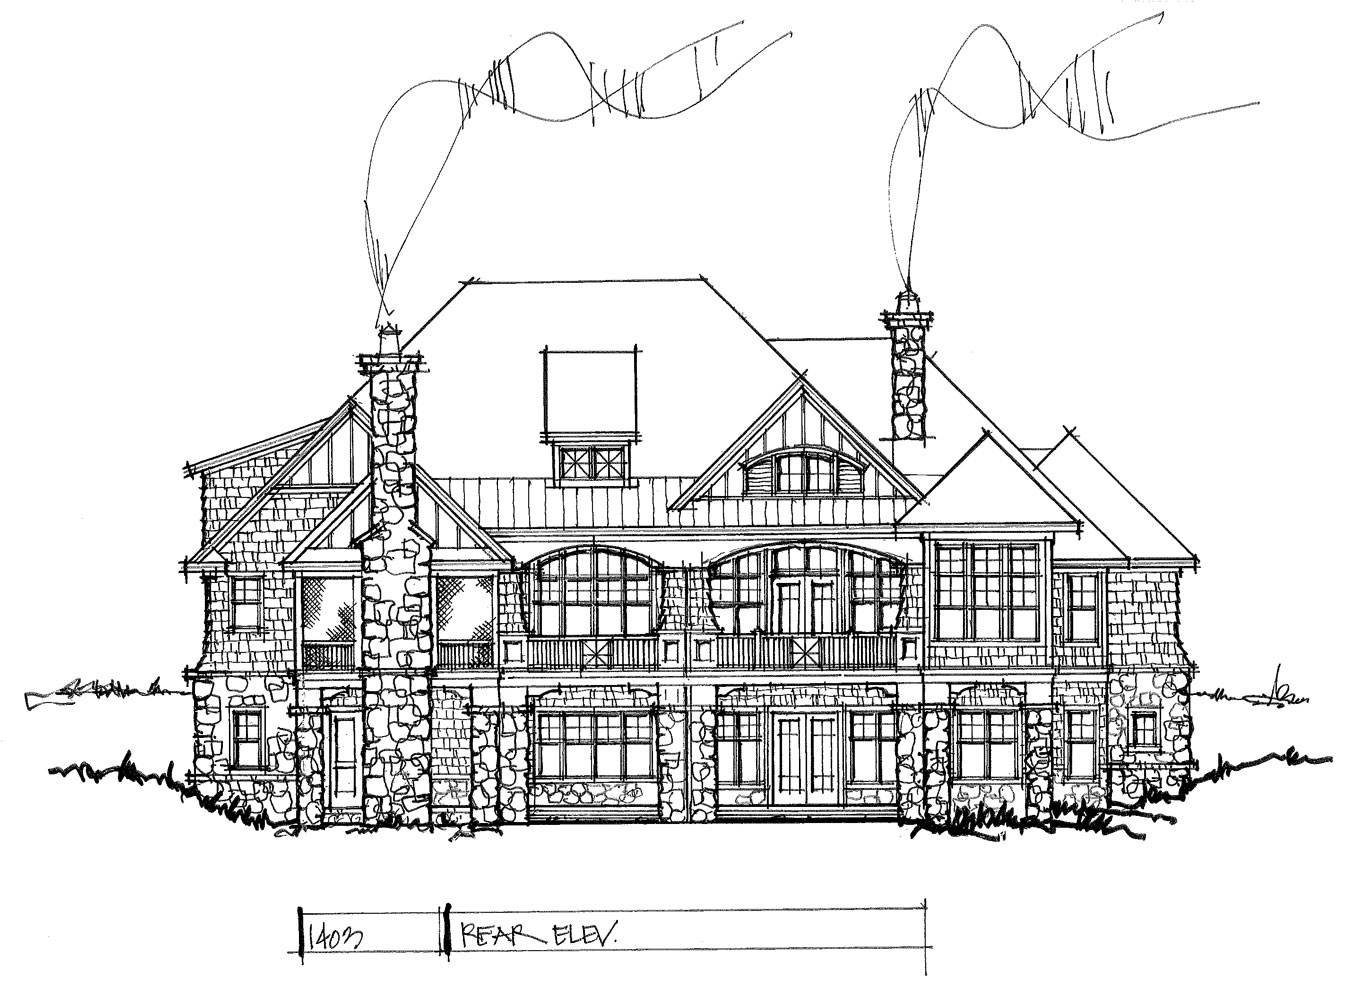 Check out the rear elevation of house plan 1403.